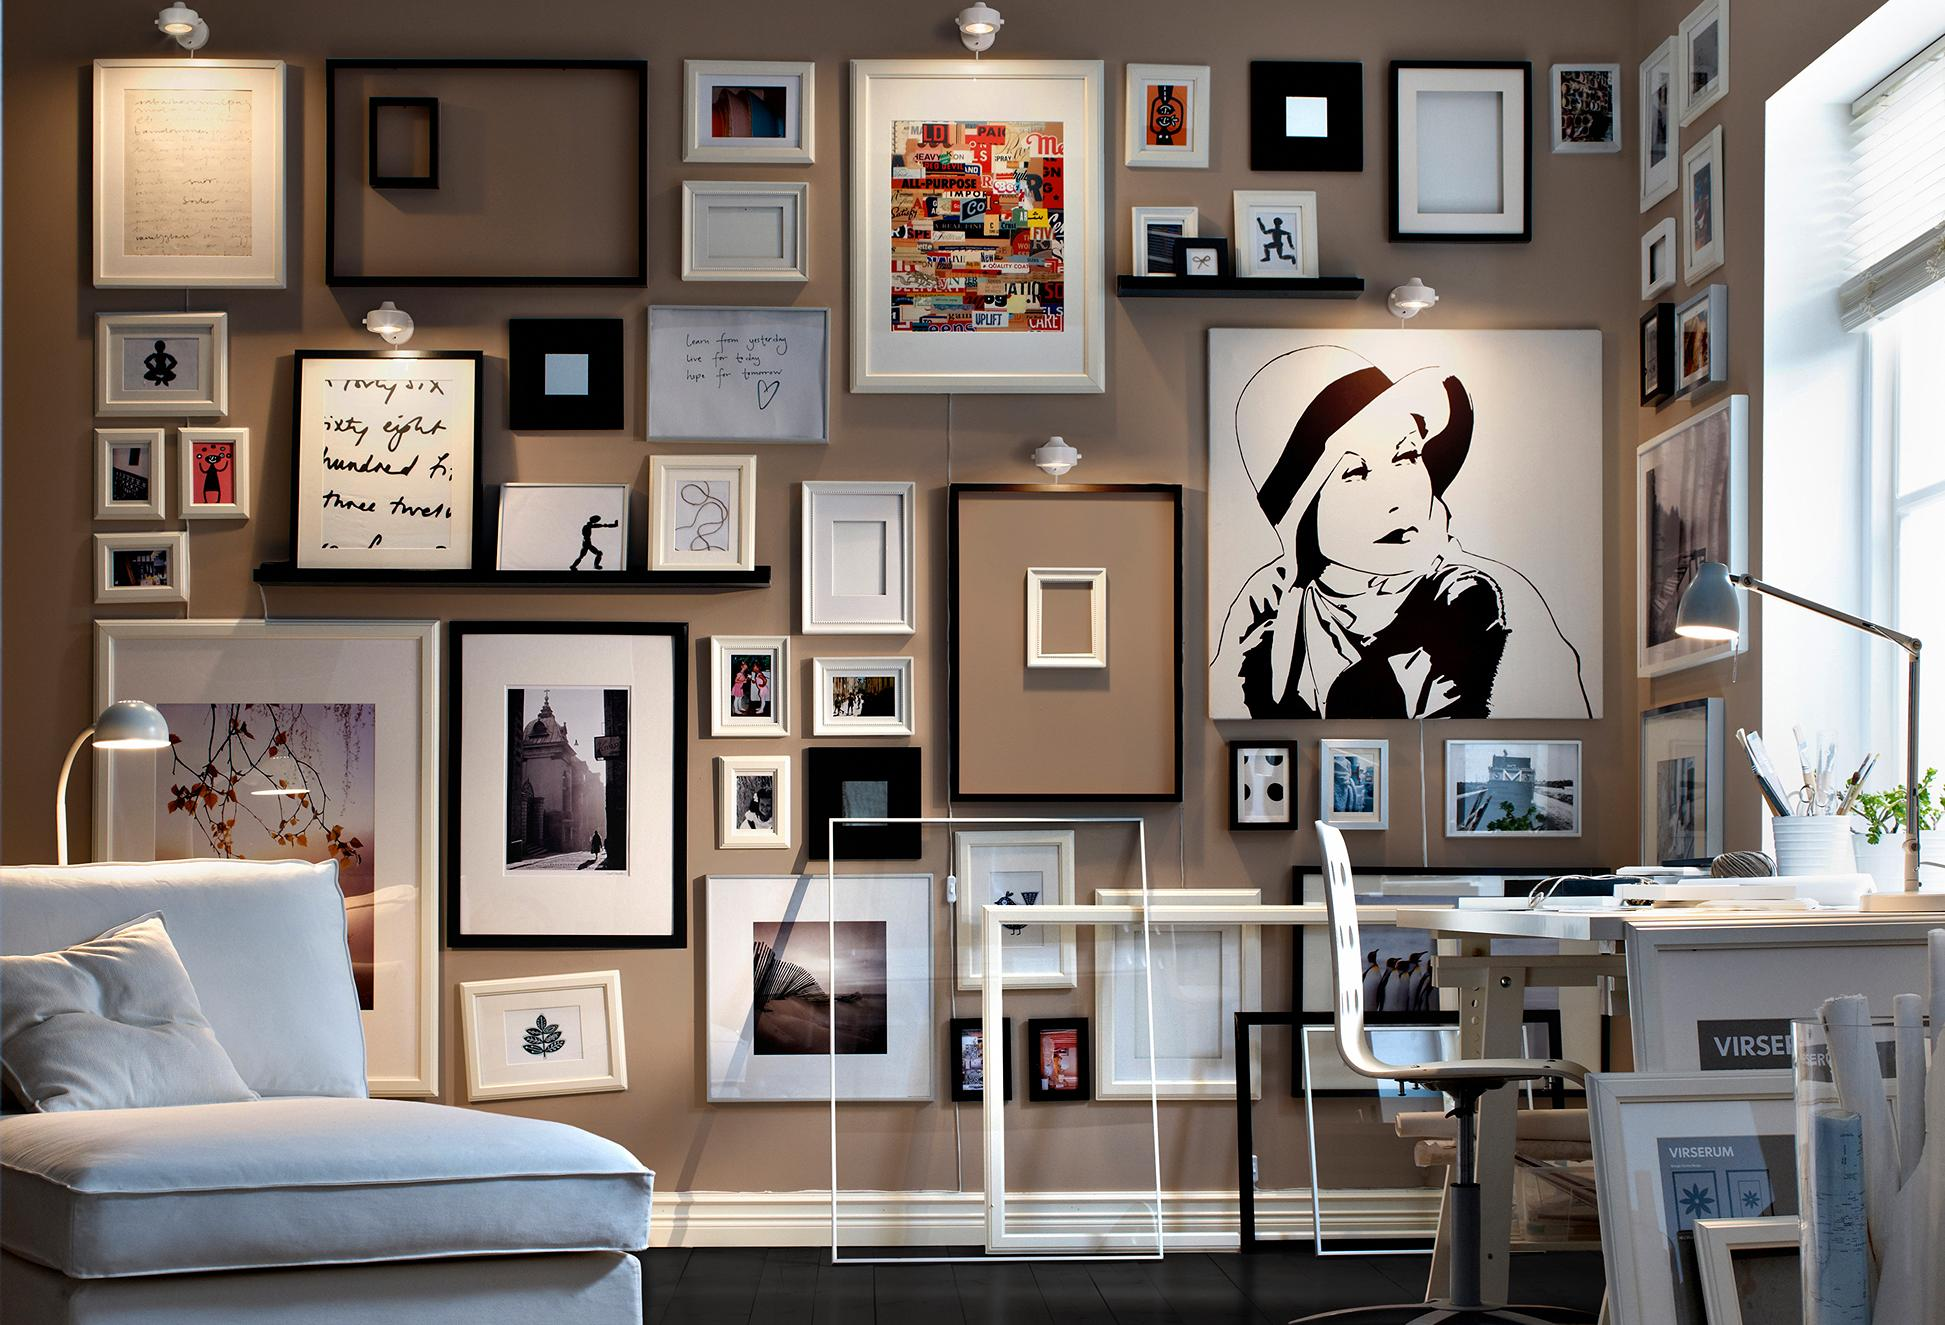 Monochrome framed collection of sketches and art living modern